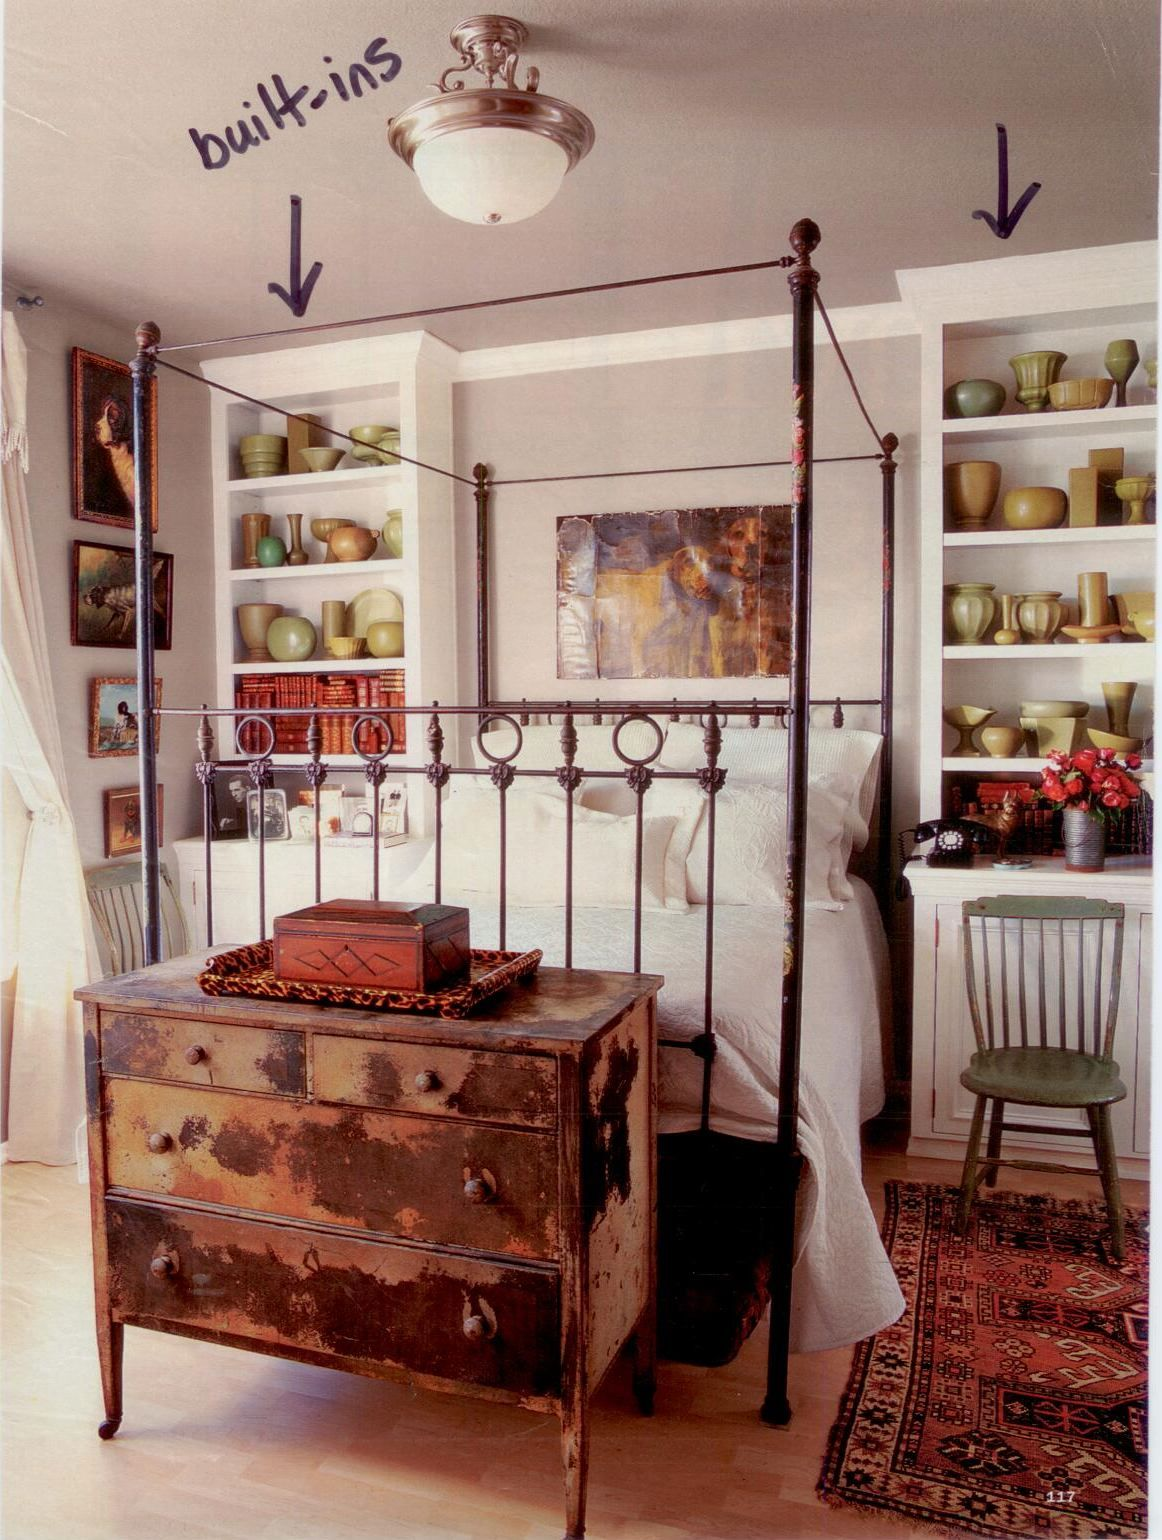 office guest room ideas stuff. Iron Bed And Built In Bookcases Make For A Cozy Bedroom Office Guest Room Ideas Stuff